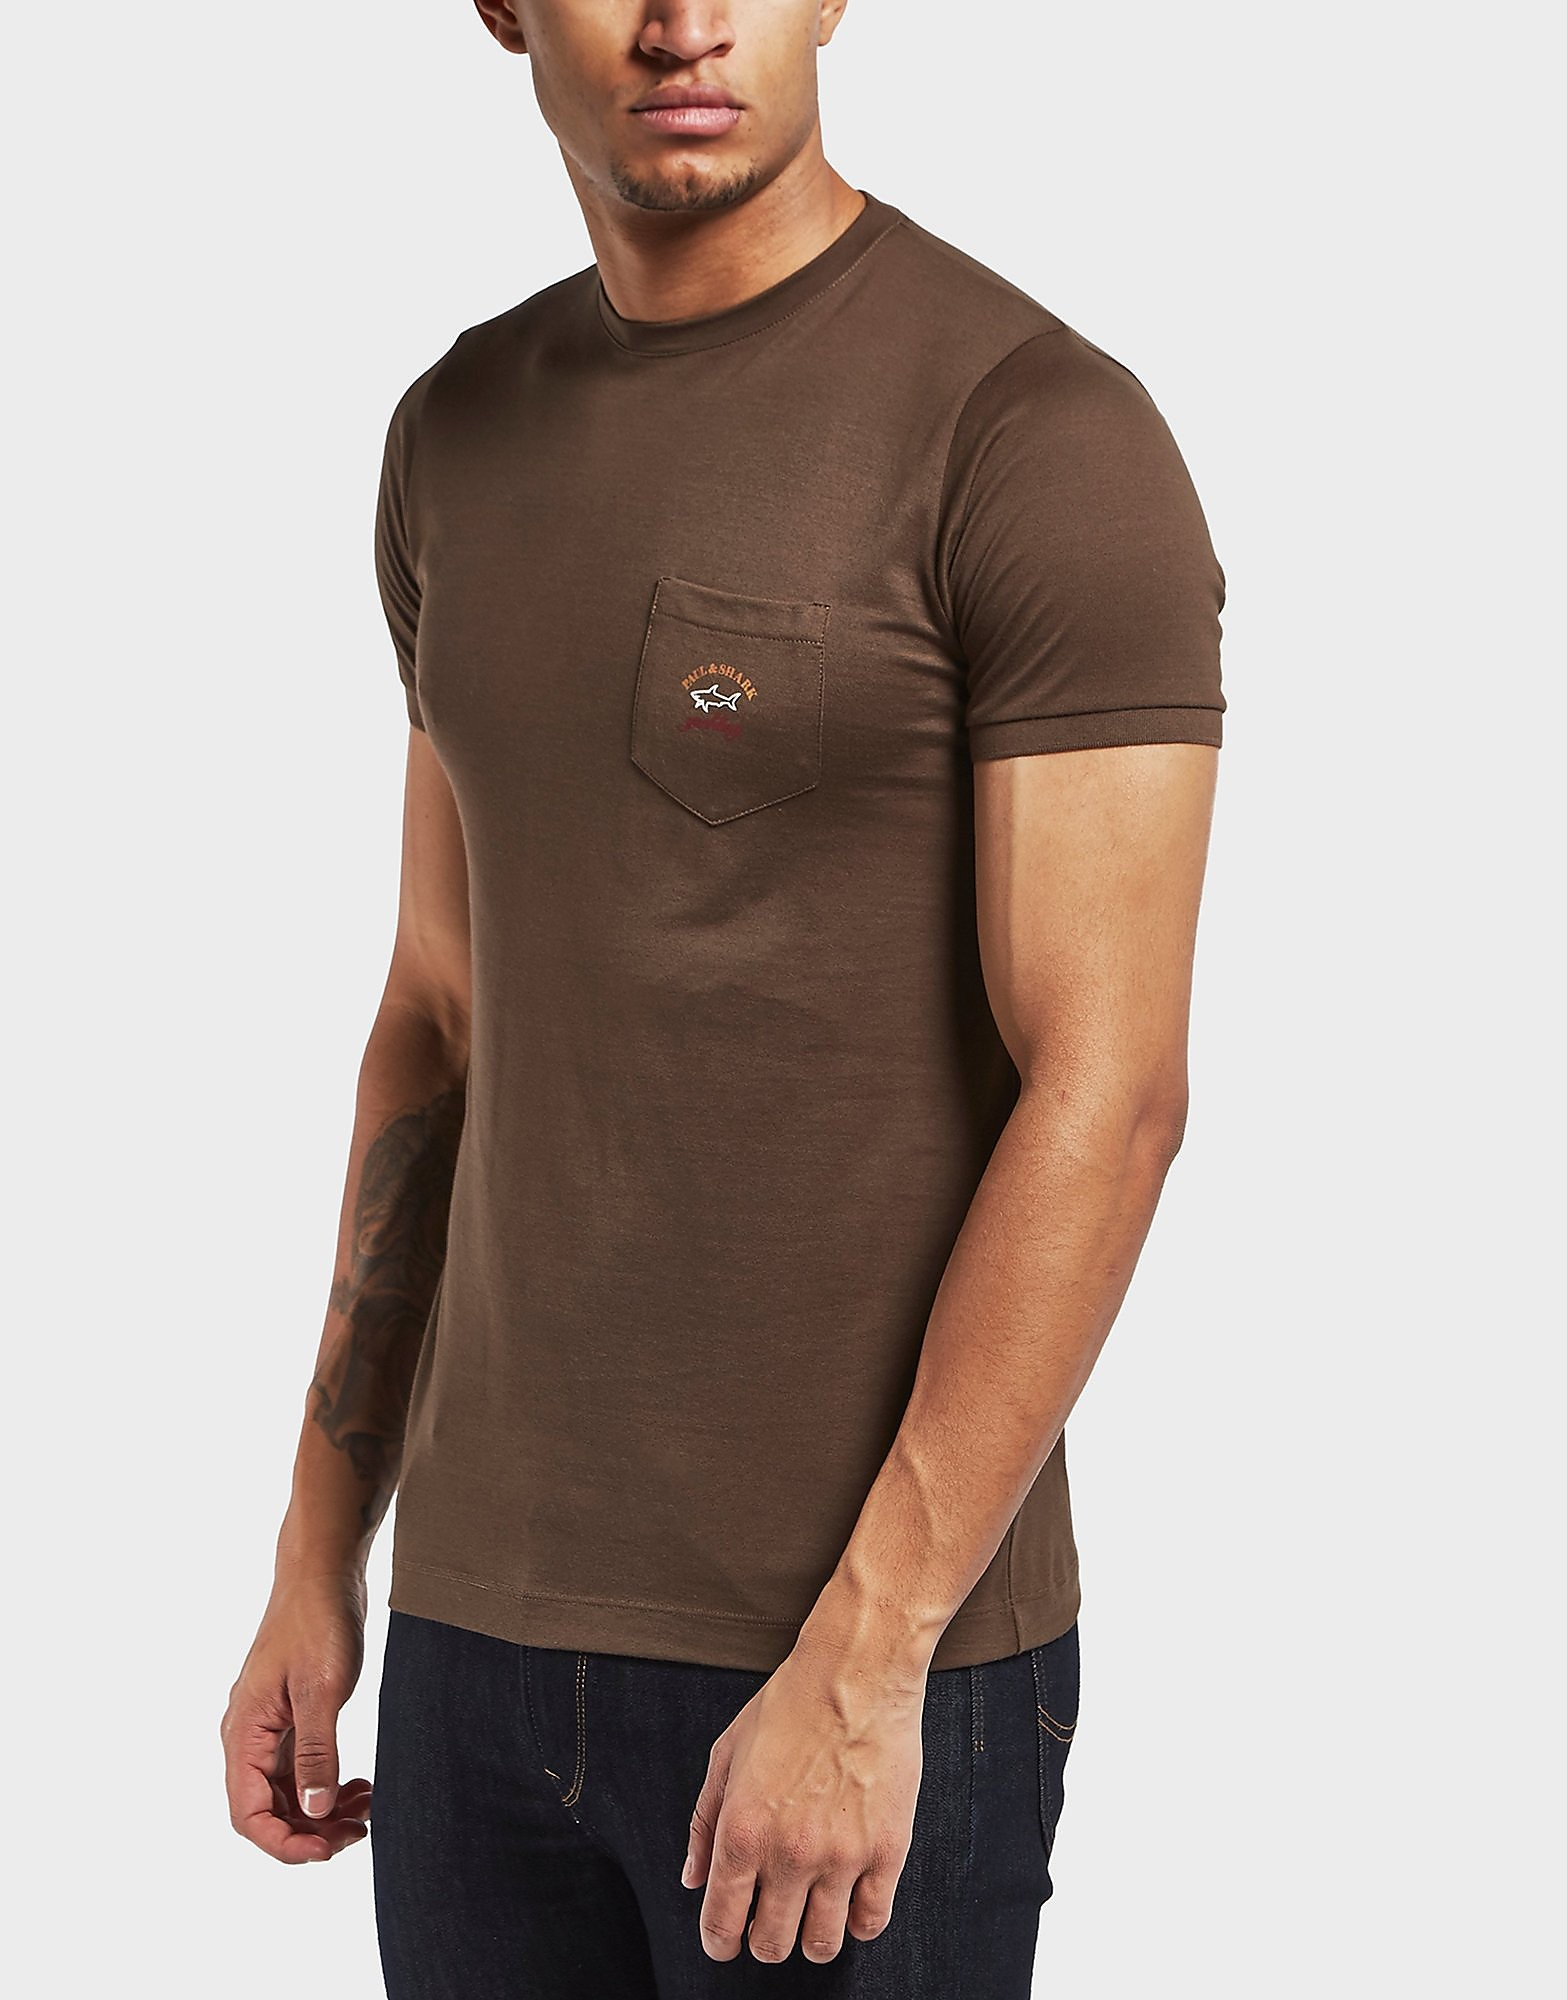 Paul and Shark Pocket Short Sleeve T-Shirt - Exclusive